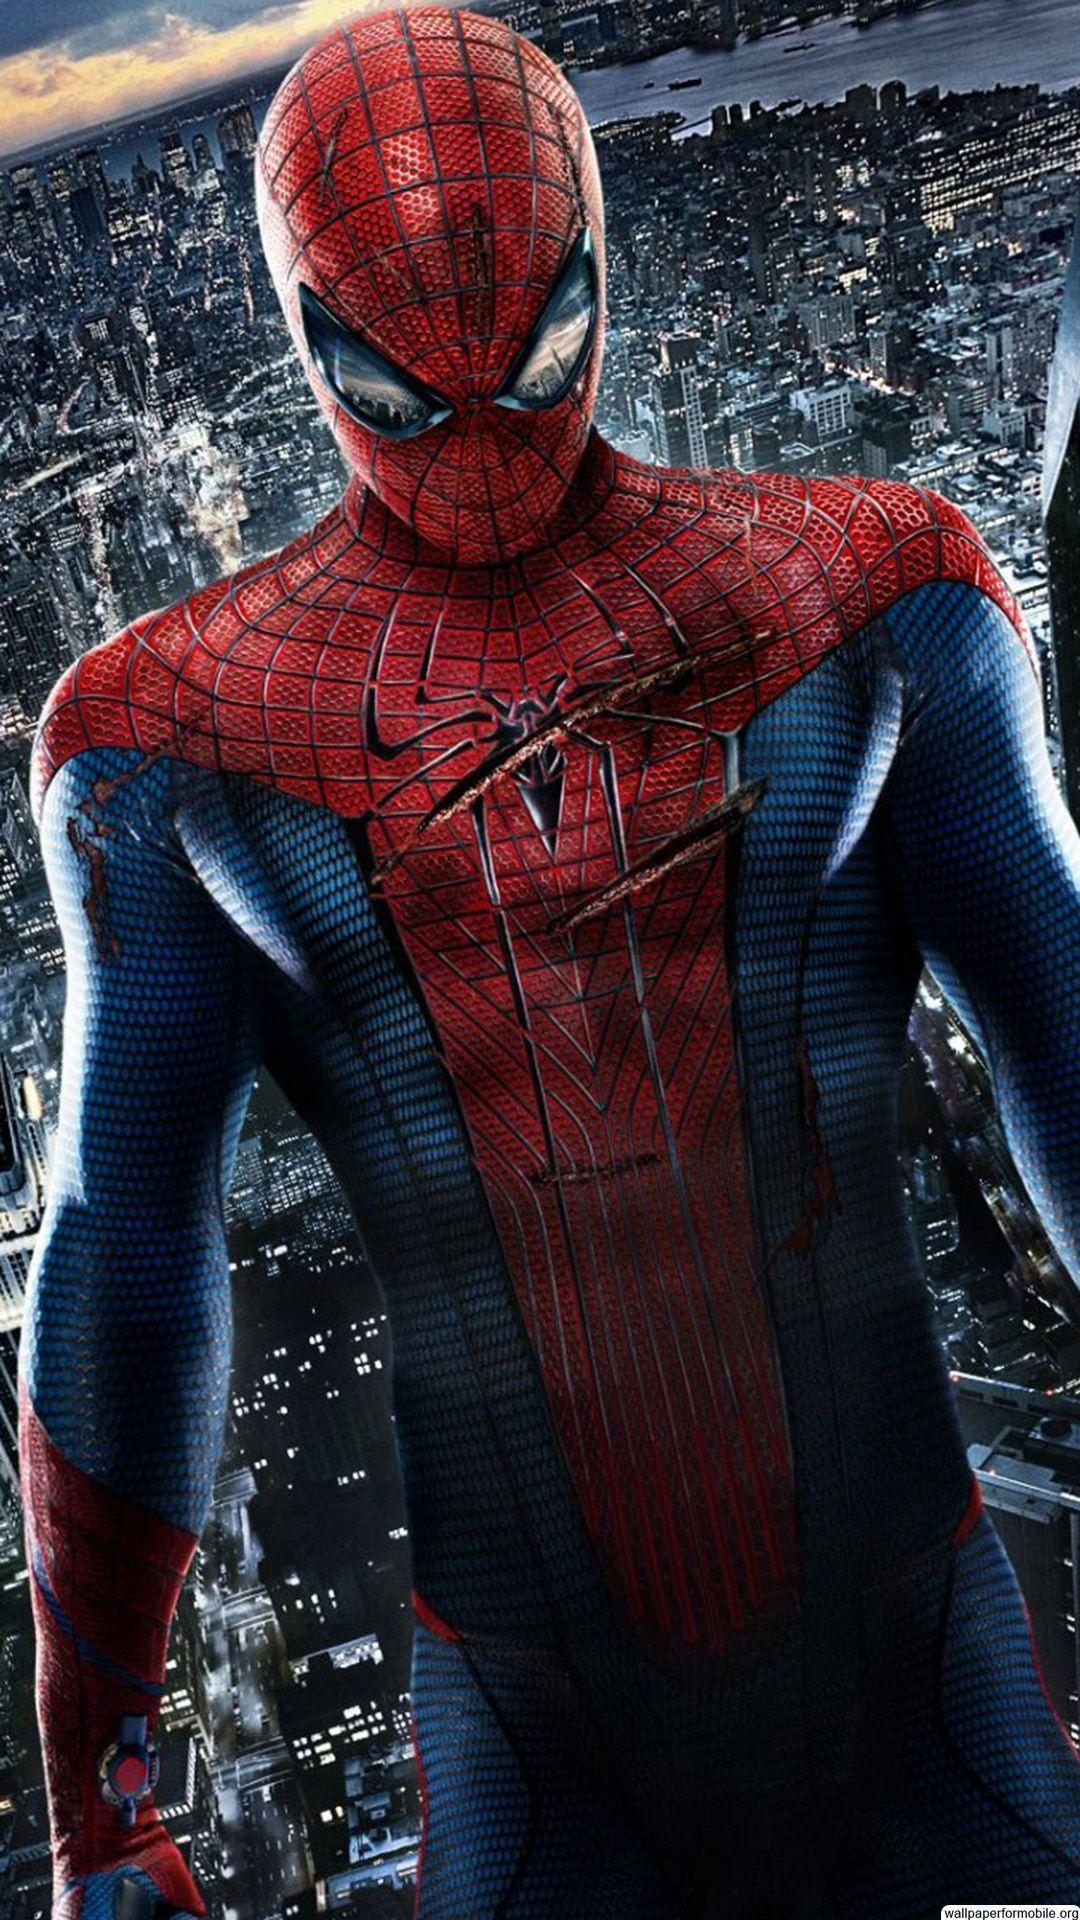 View 1080P Spiderman Hd Wallpapers For Mobile PNG